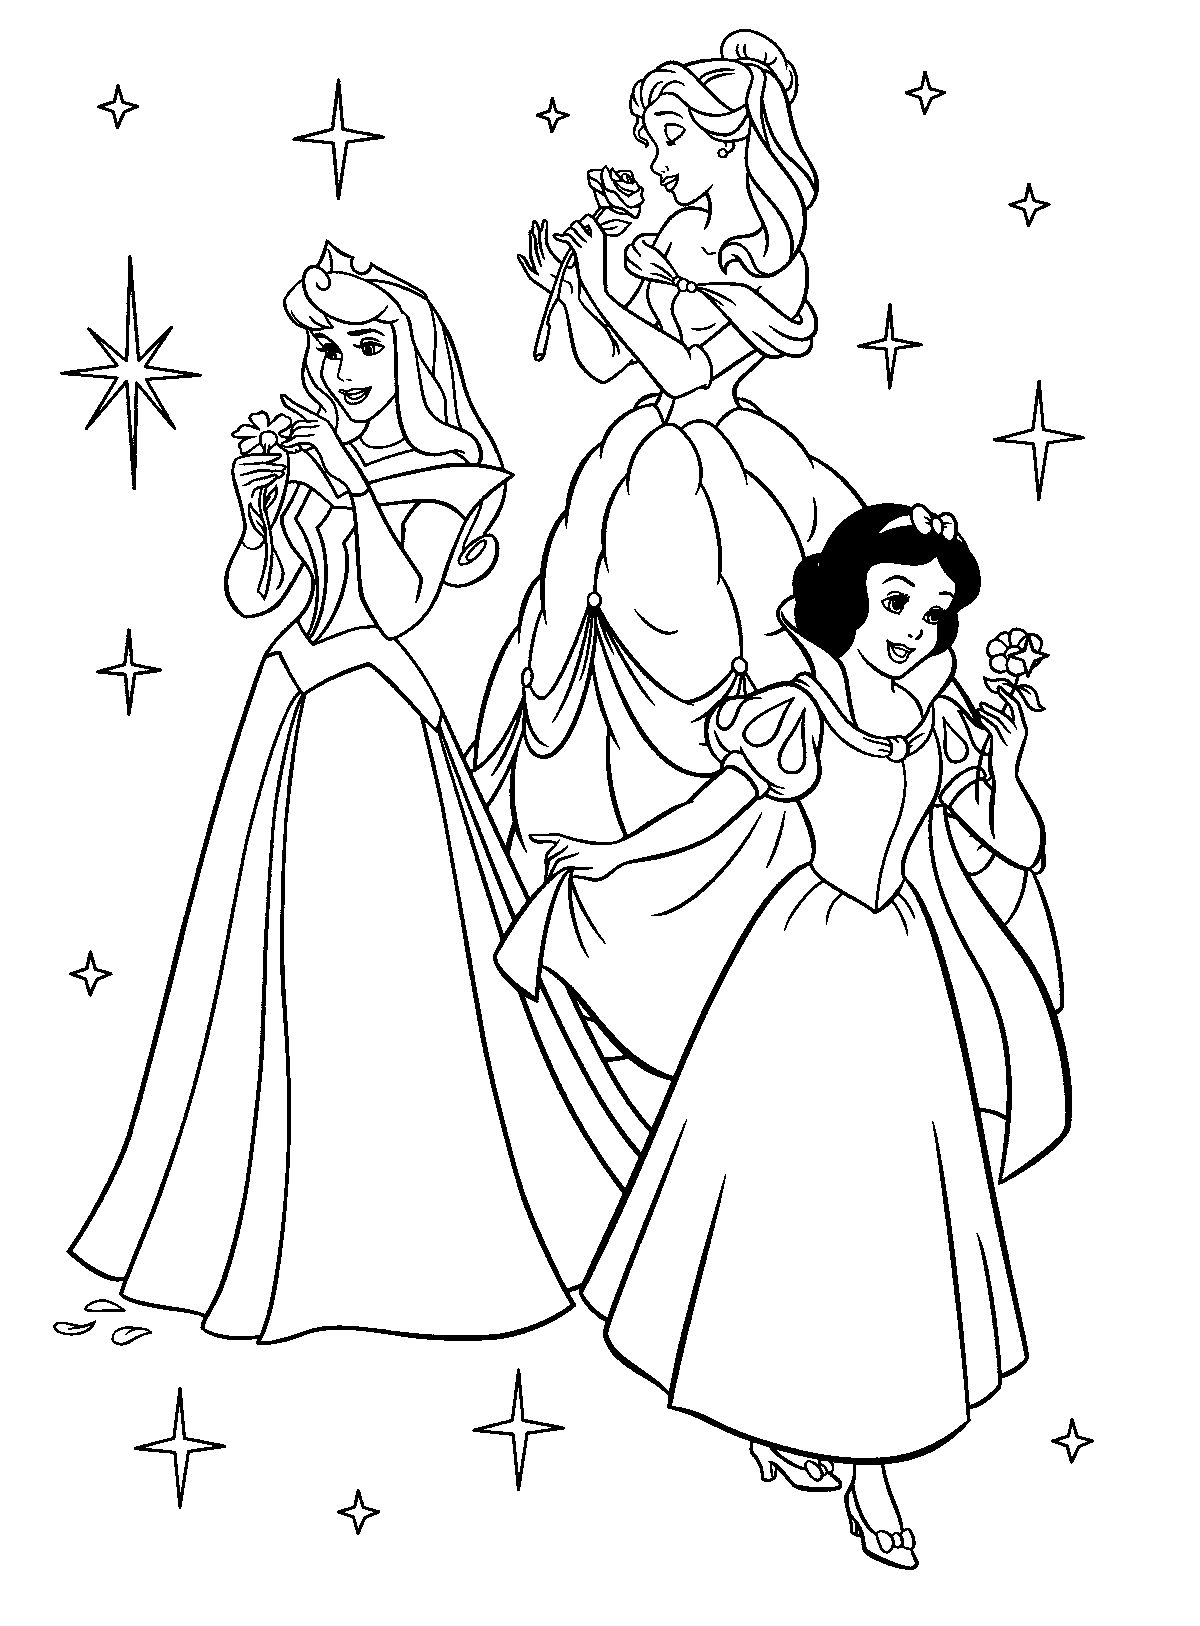 coloring pages for kids disney Free Printable Disney Princess Coloring Pages For Kids | Színezők  coloring pages for kids disney